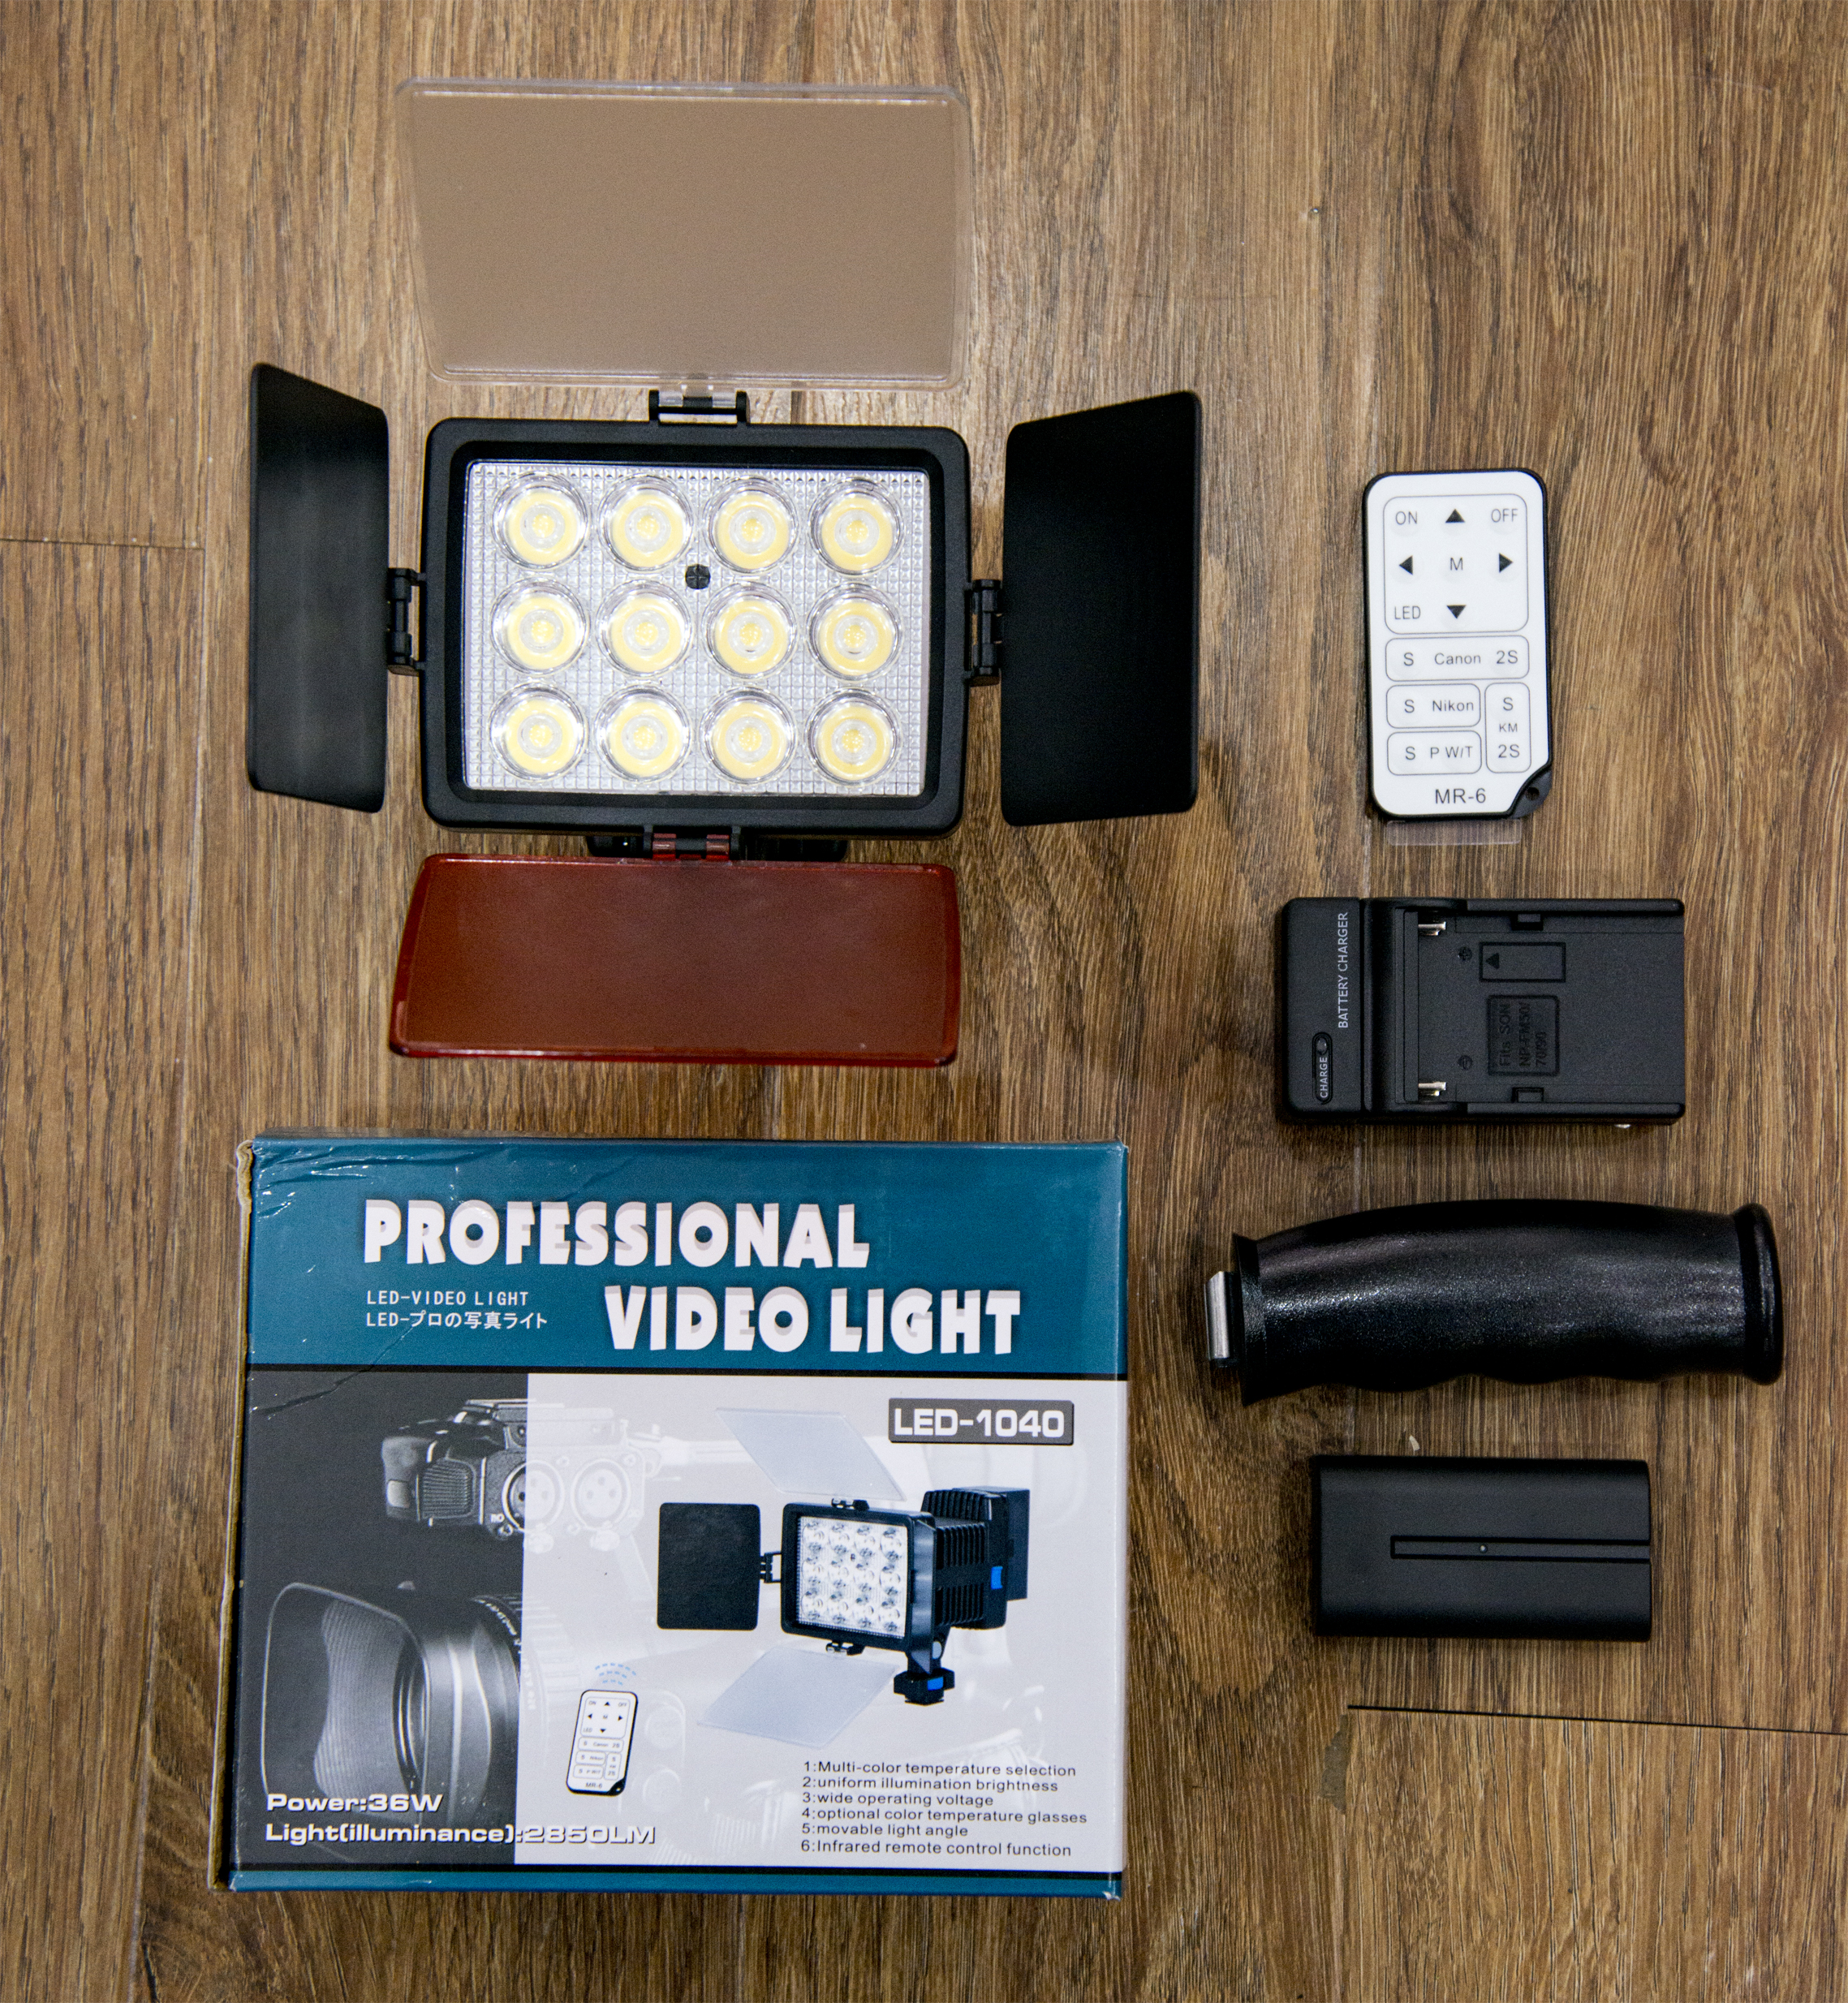 LED 1040 Professional